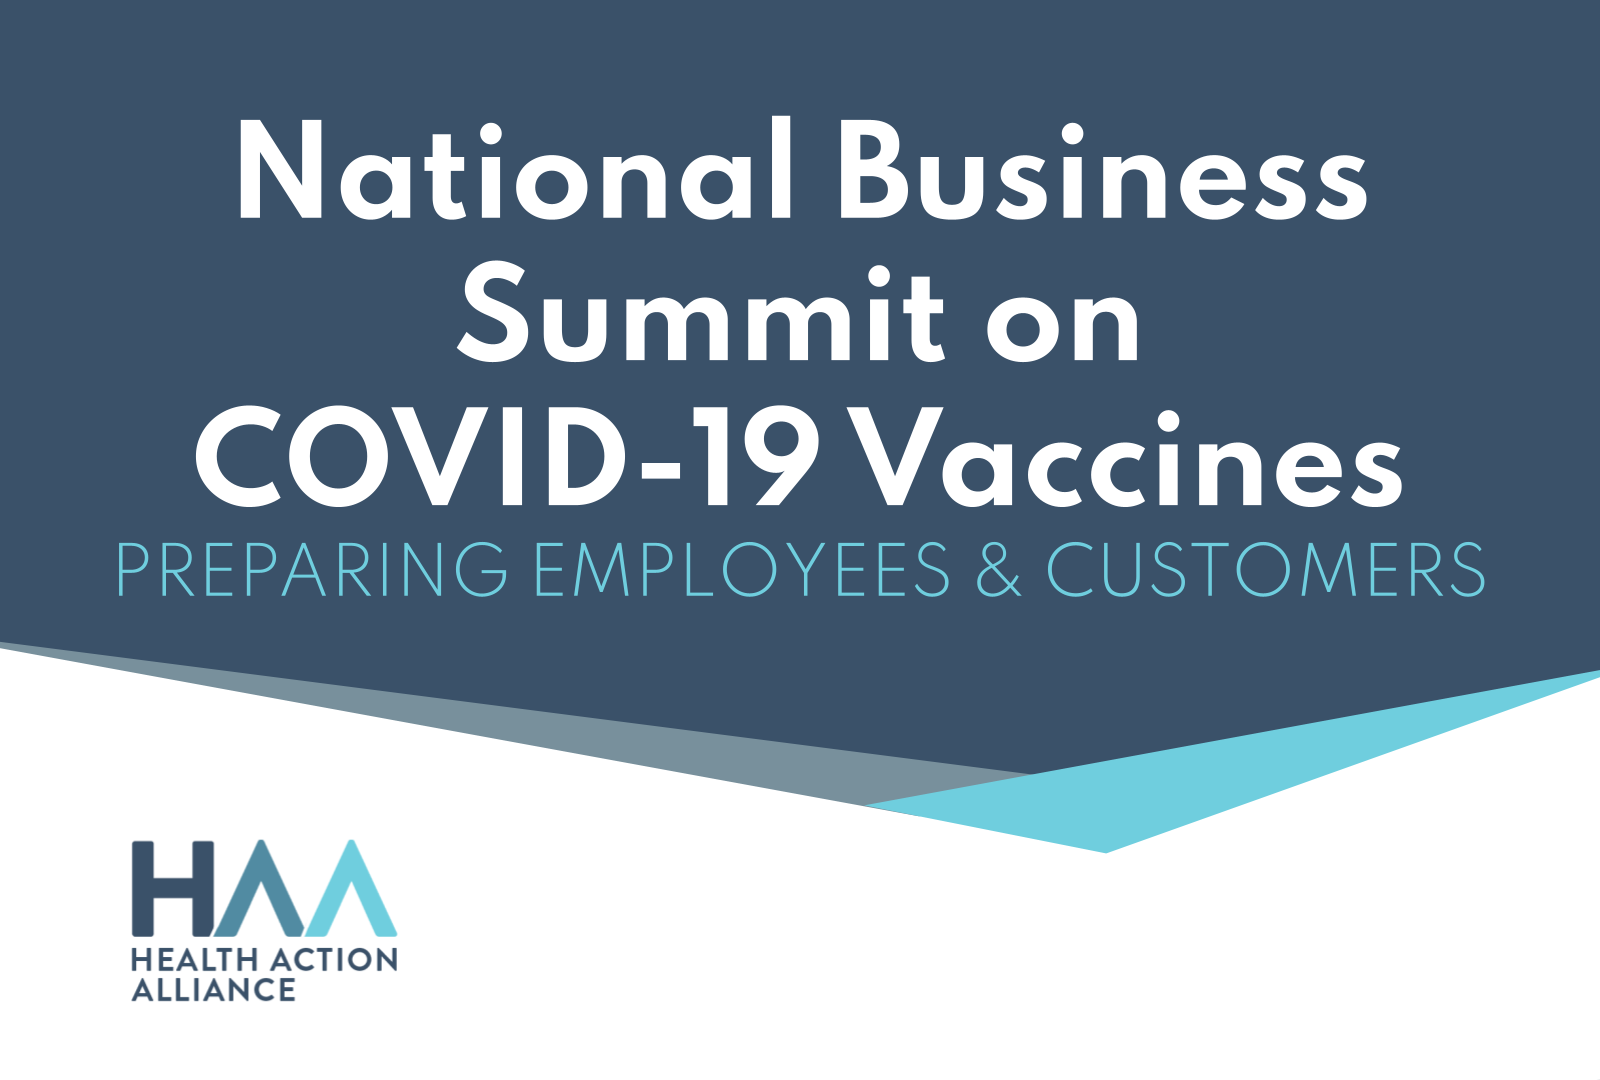 National Business Summit on COVID-19 Vaccines